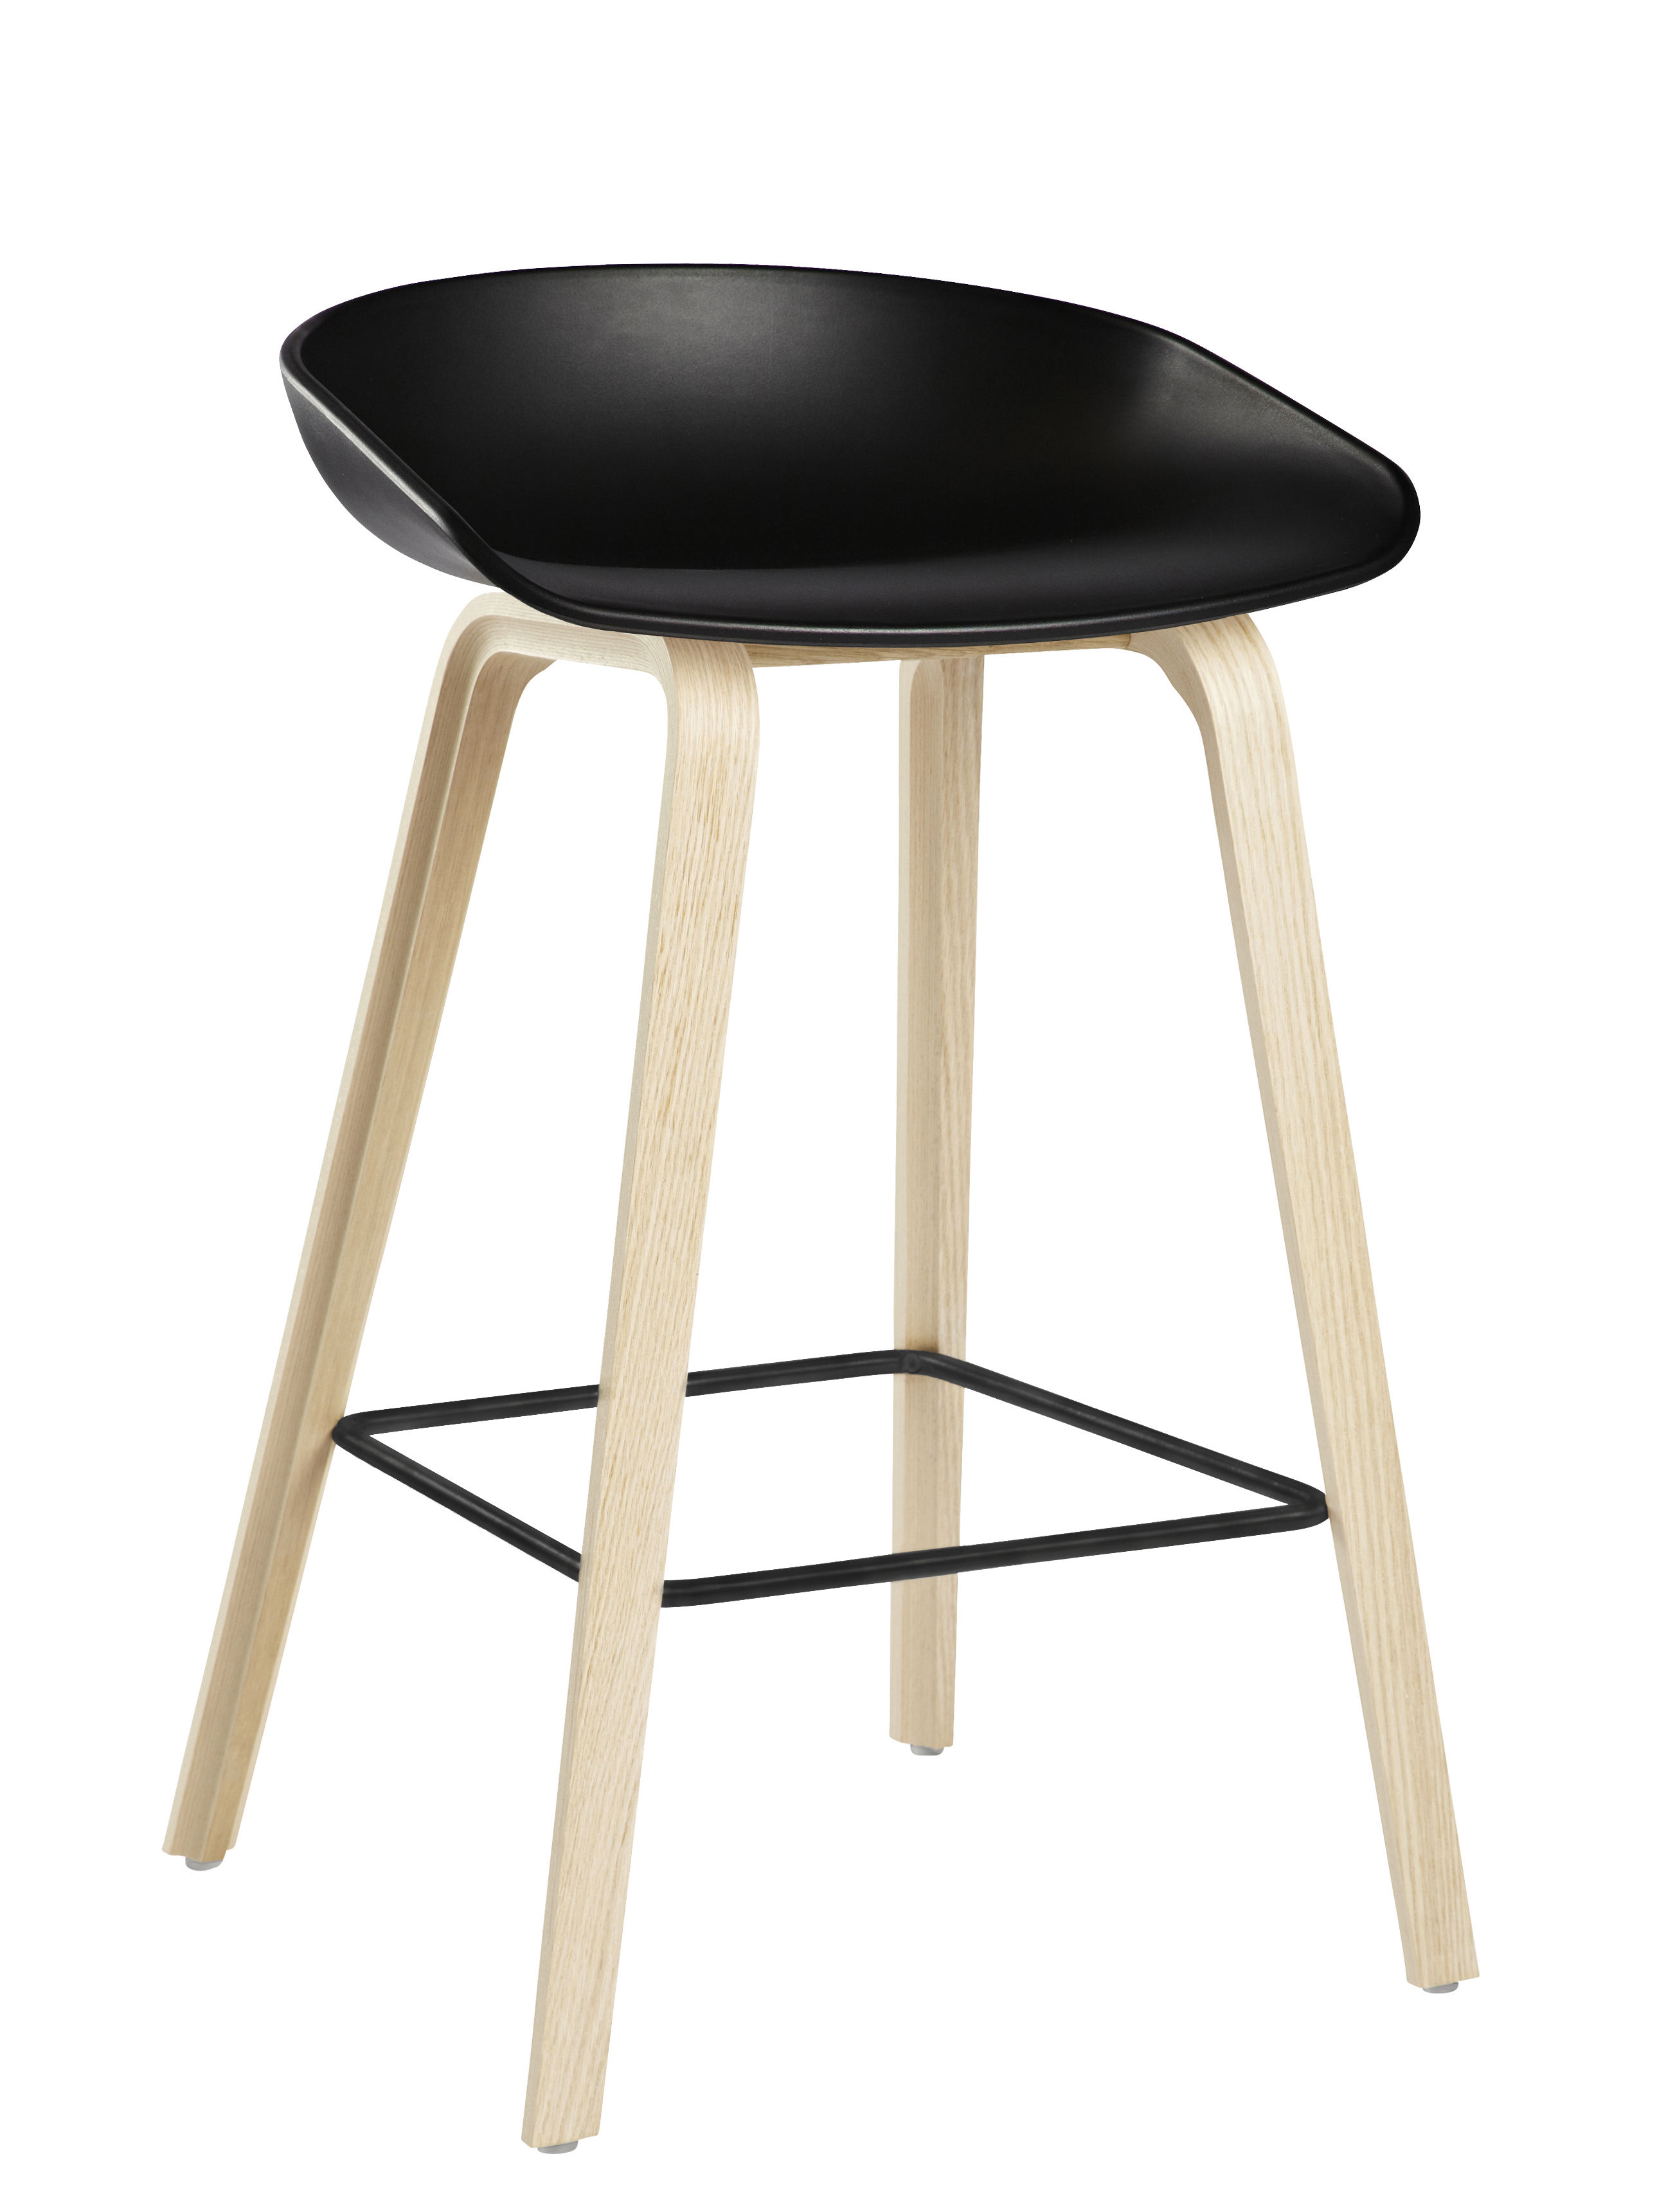 Bar Stool About A Stool Aas 32 By Hay Black Natural Wood